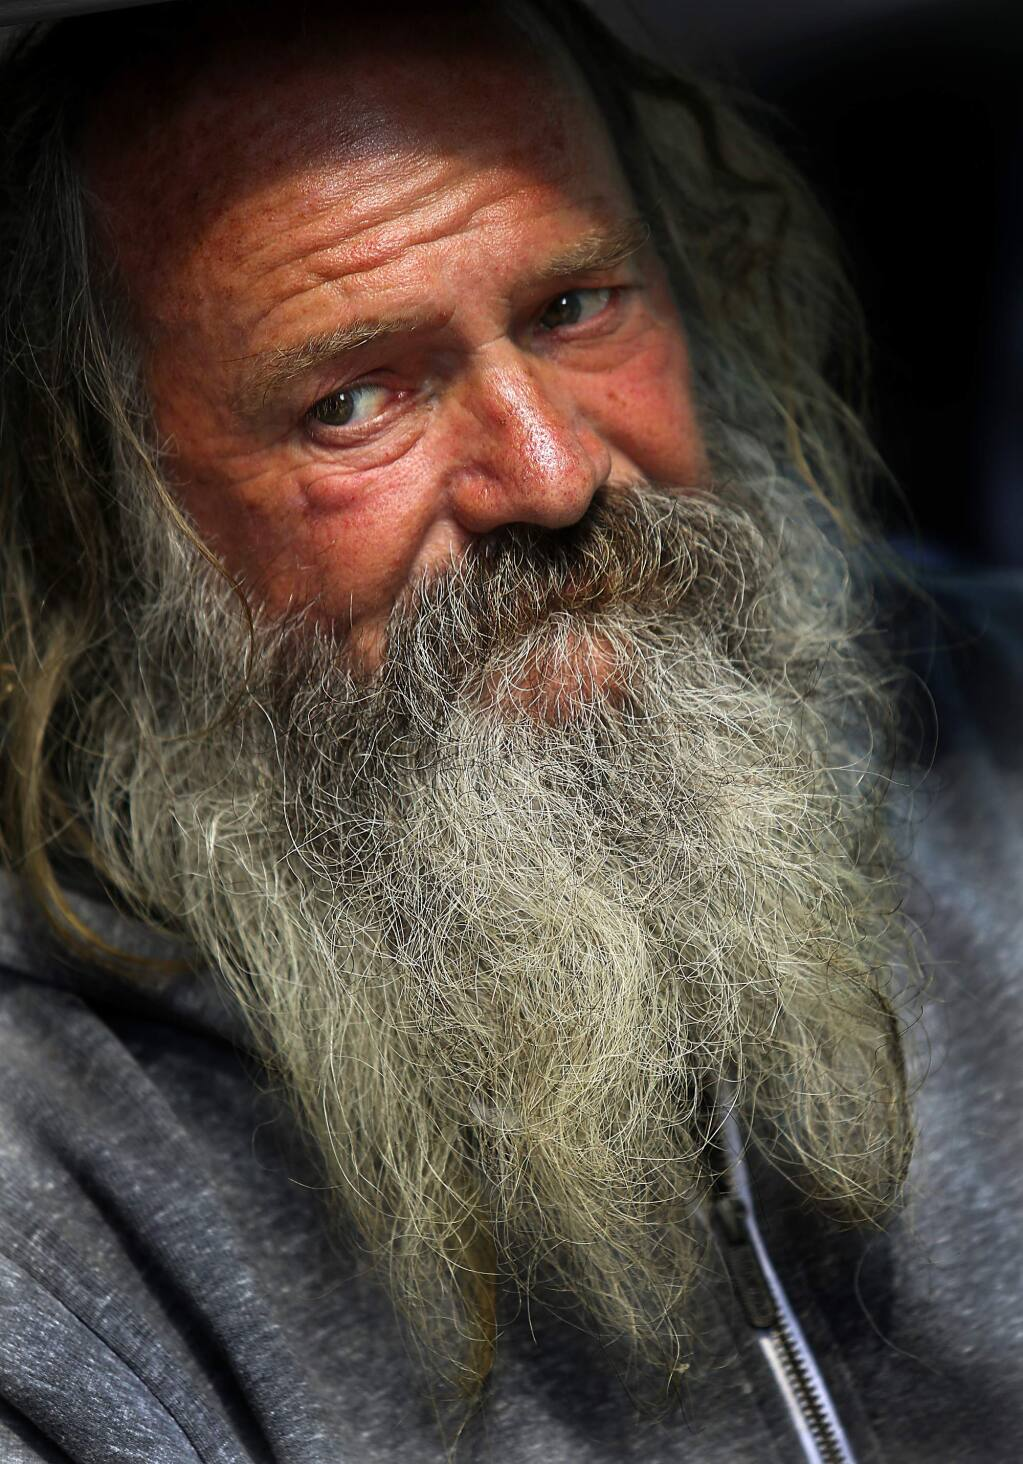 JOHN BURGESS / The Press Democrat A homeless man who declined to give his name has lived near the St. Vincent de Paul Society in Santa Rosa for the past 18 months. Sonoma County's most recent homeless count, on Jan. 23, found 3,107 people were homeless.